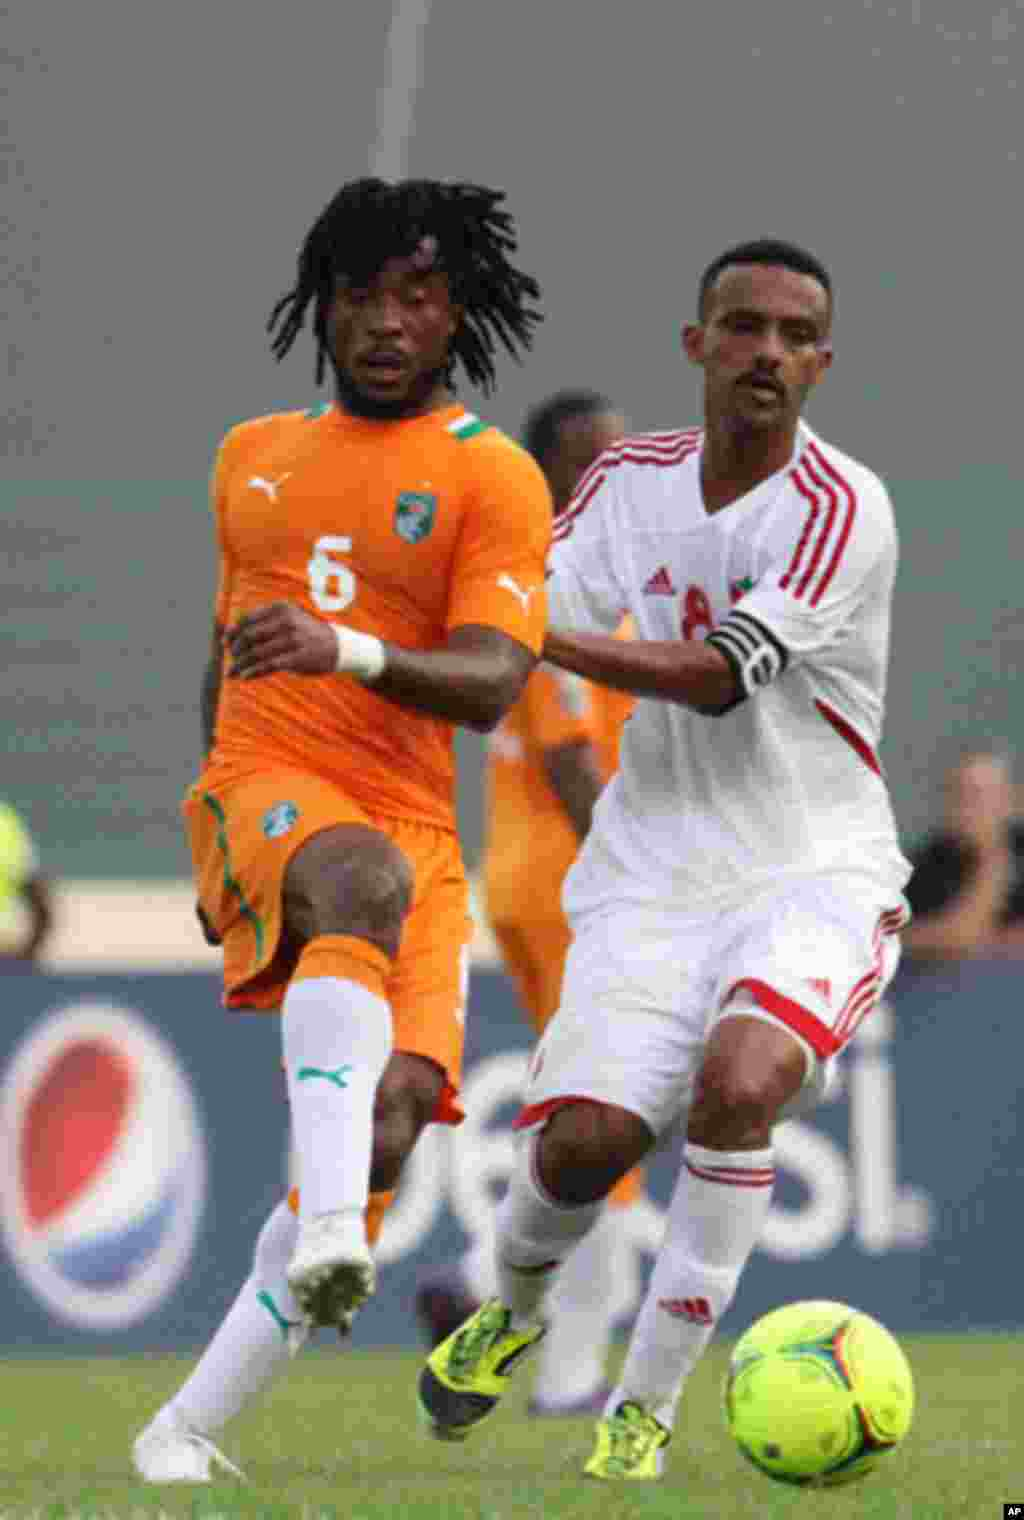 "Jean-Jacques Gosso of Ivory Coast (L) fights for the ball with Hamid Nassir Nazar of Sudan during the African Nations Cup soccer tournament in Estadio de Malabo ""Malabo Stadium"", in Malabo January 22, 2012."